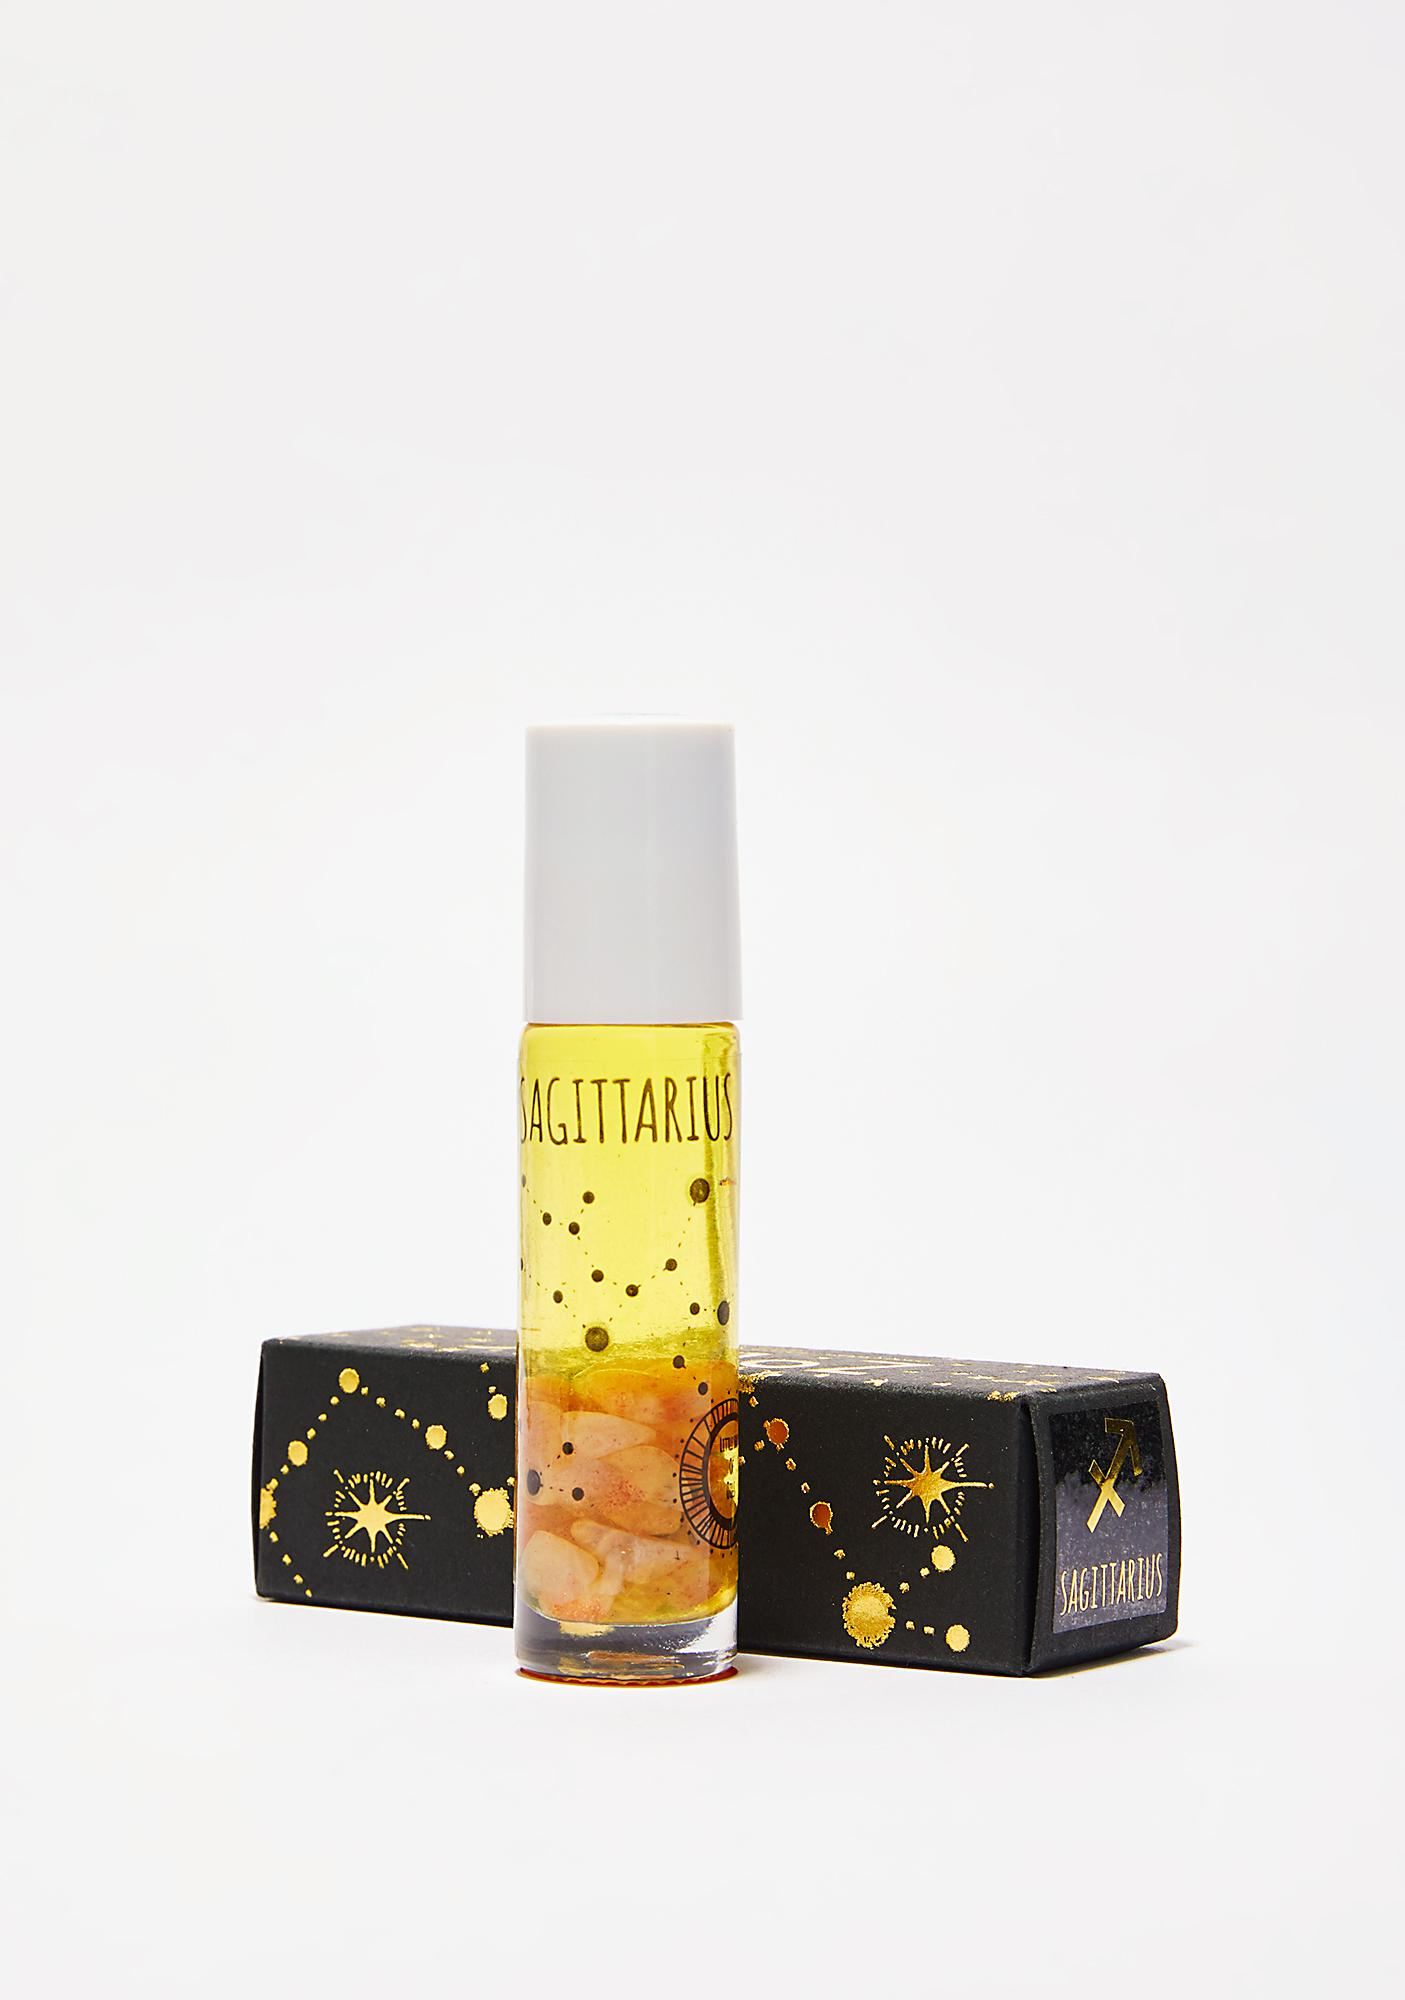 Little Shop of Oils Sagittarius Oil Perfume Roller